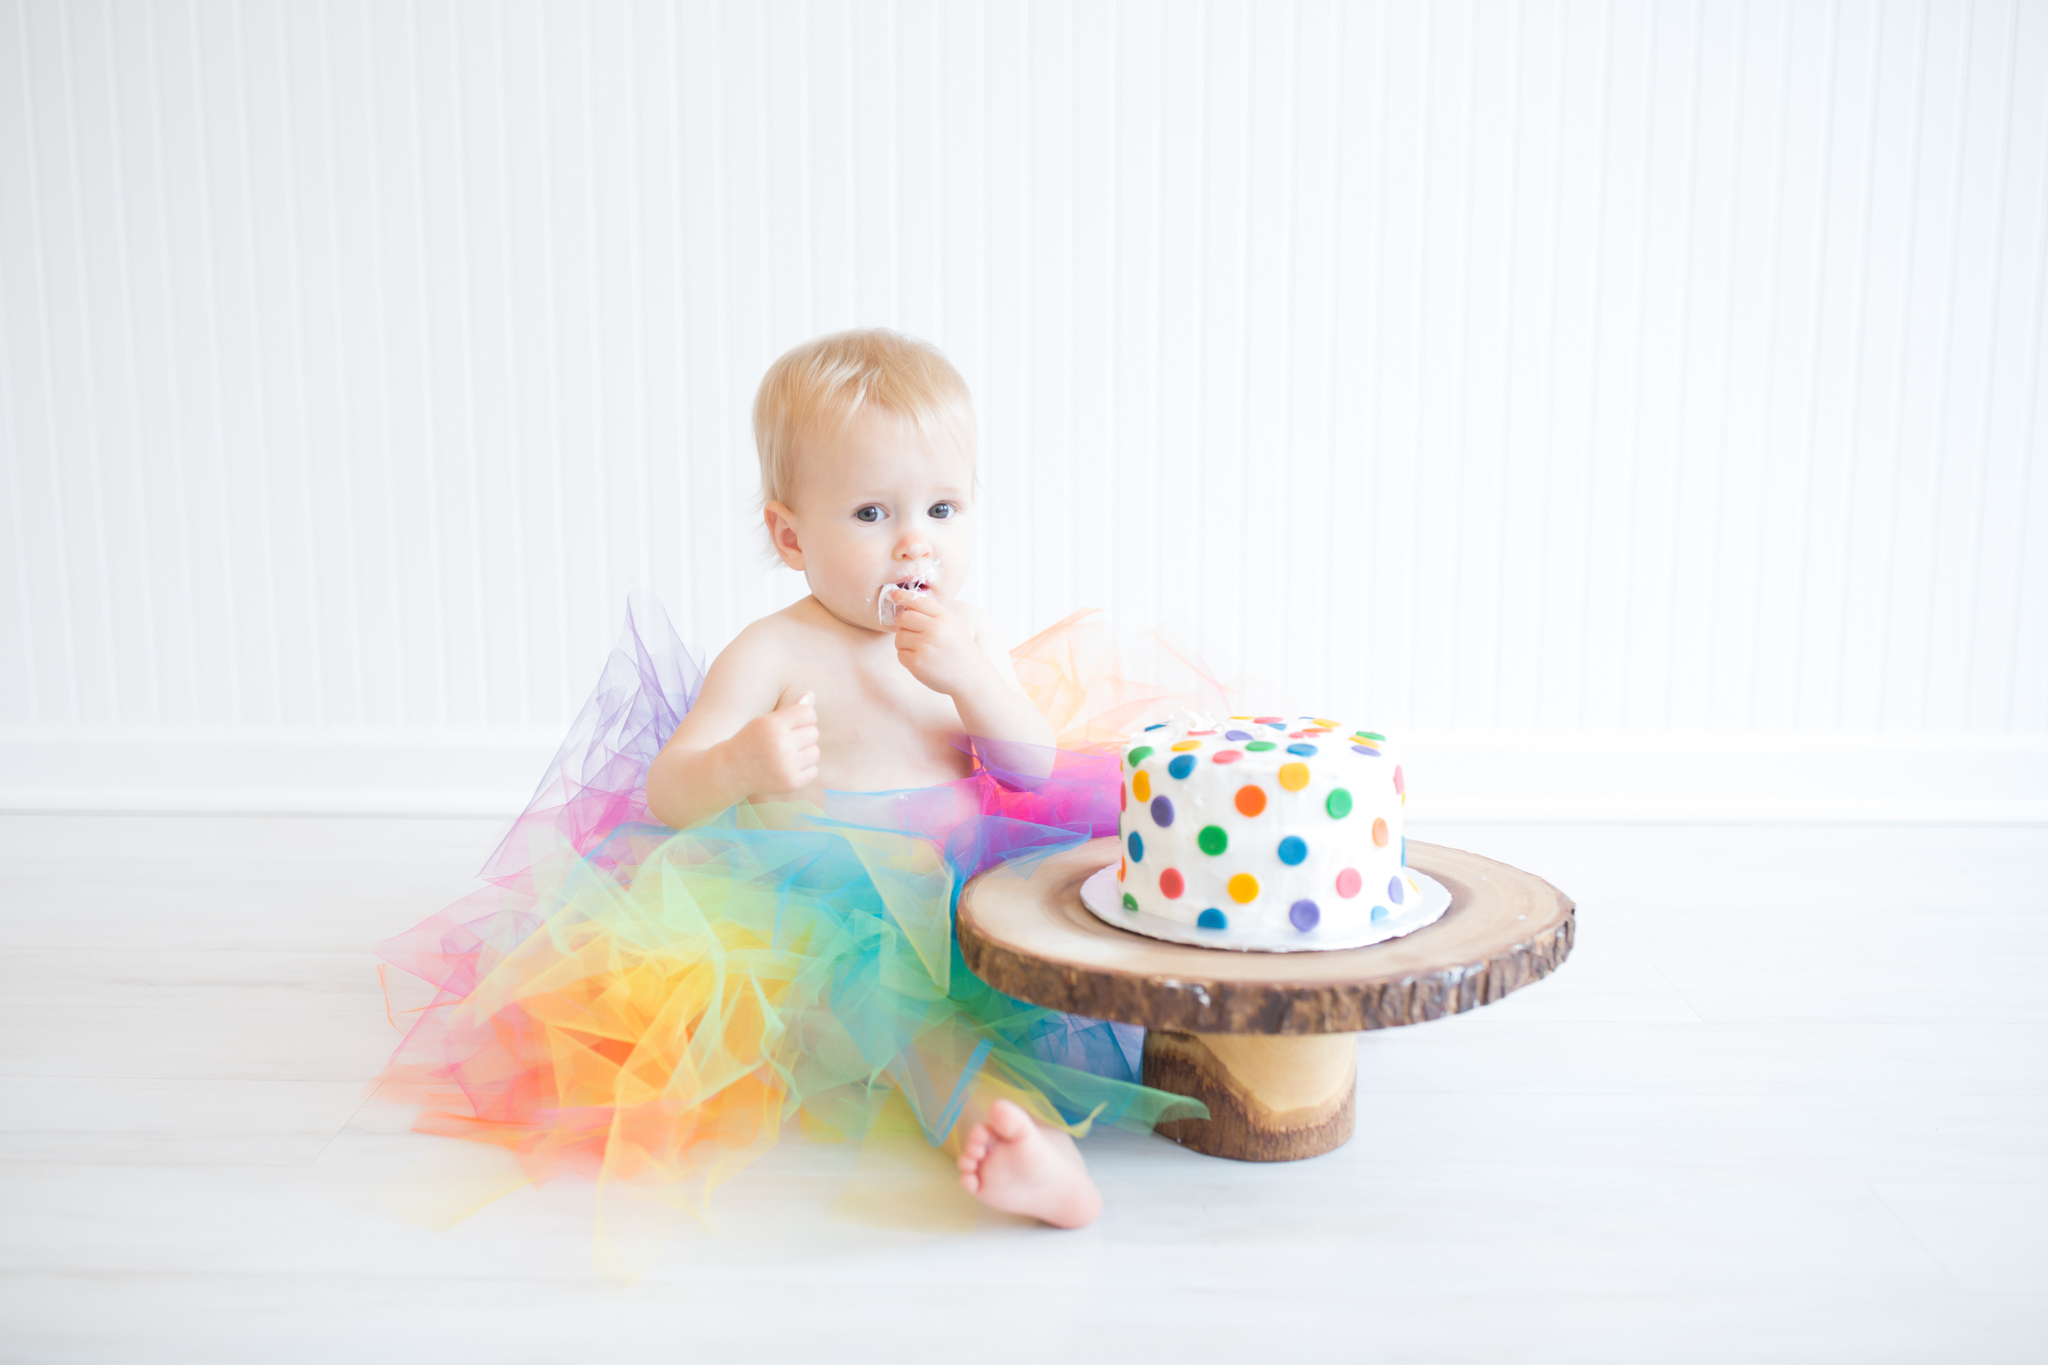 Milestone cake smash Newborn Studio Session | Cara Peterson Photography Rockford IL-9.jpg